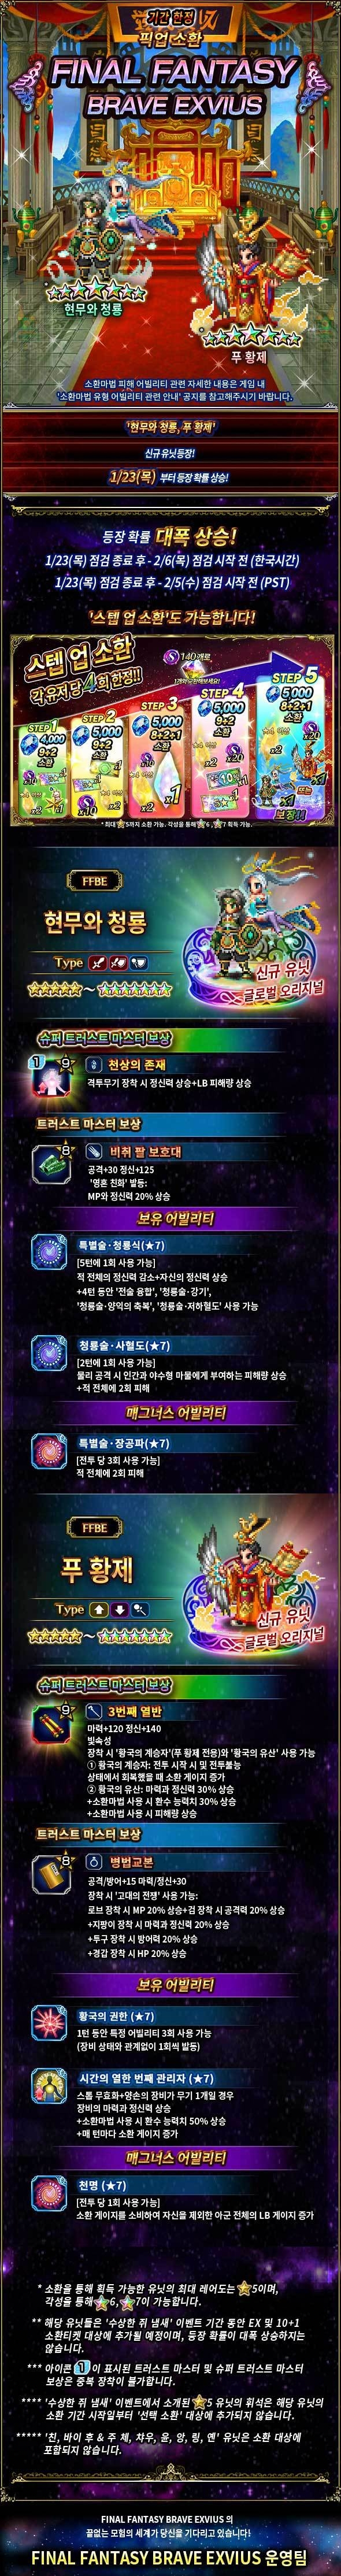 gacha_News_FFBE_CNY2020_FeatureSummon_Compilation_ko.jpg